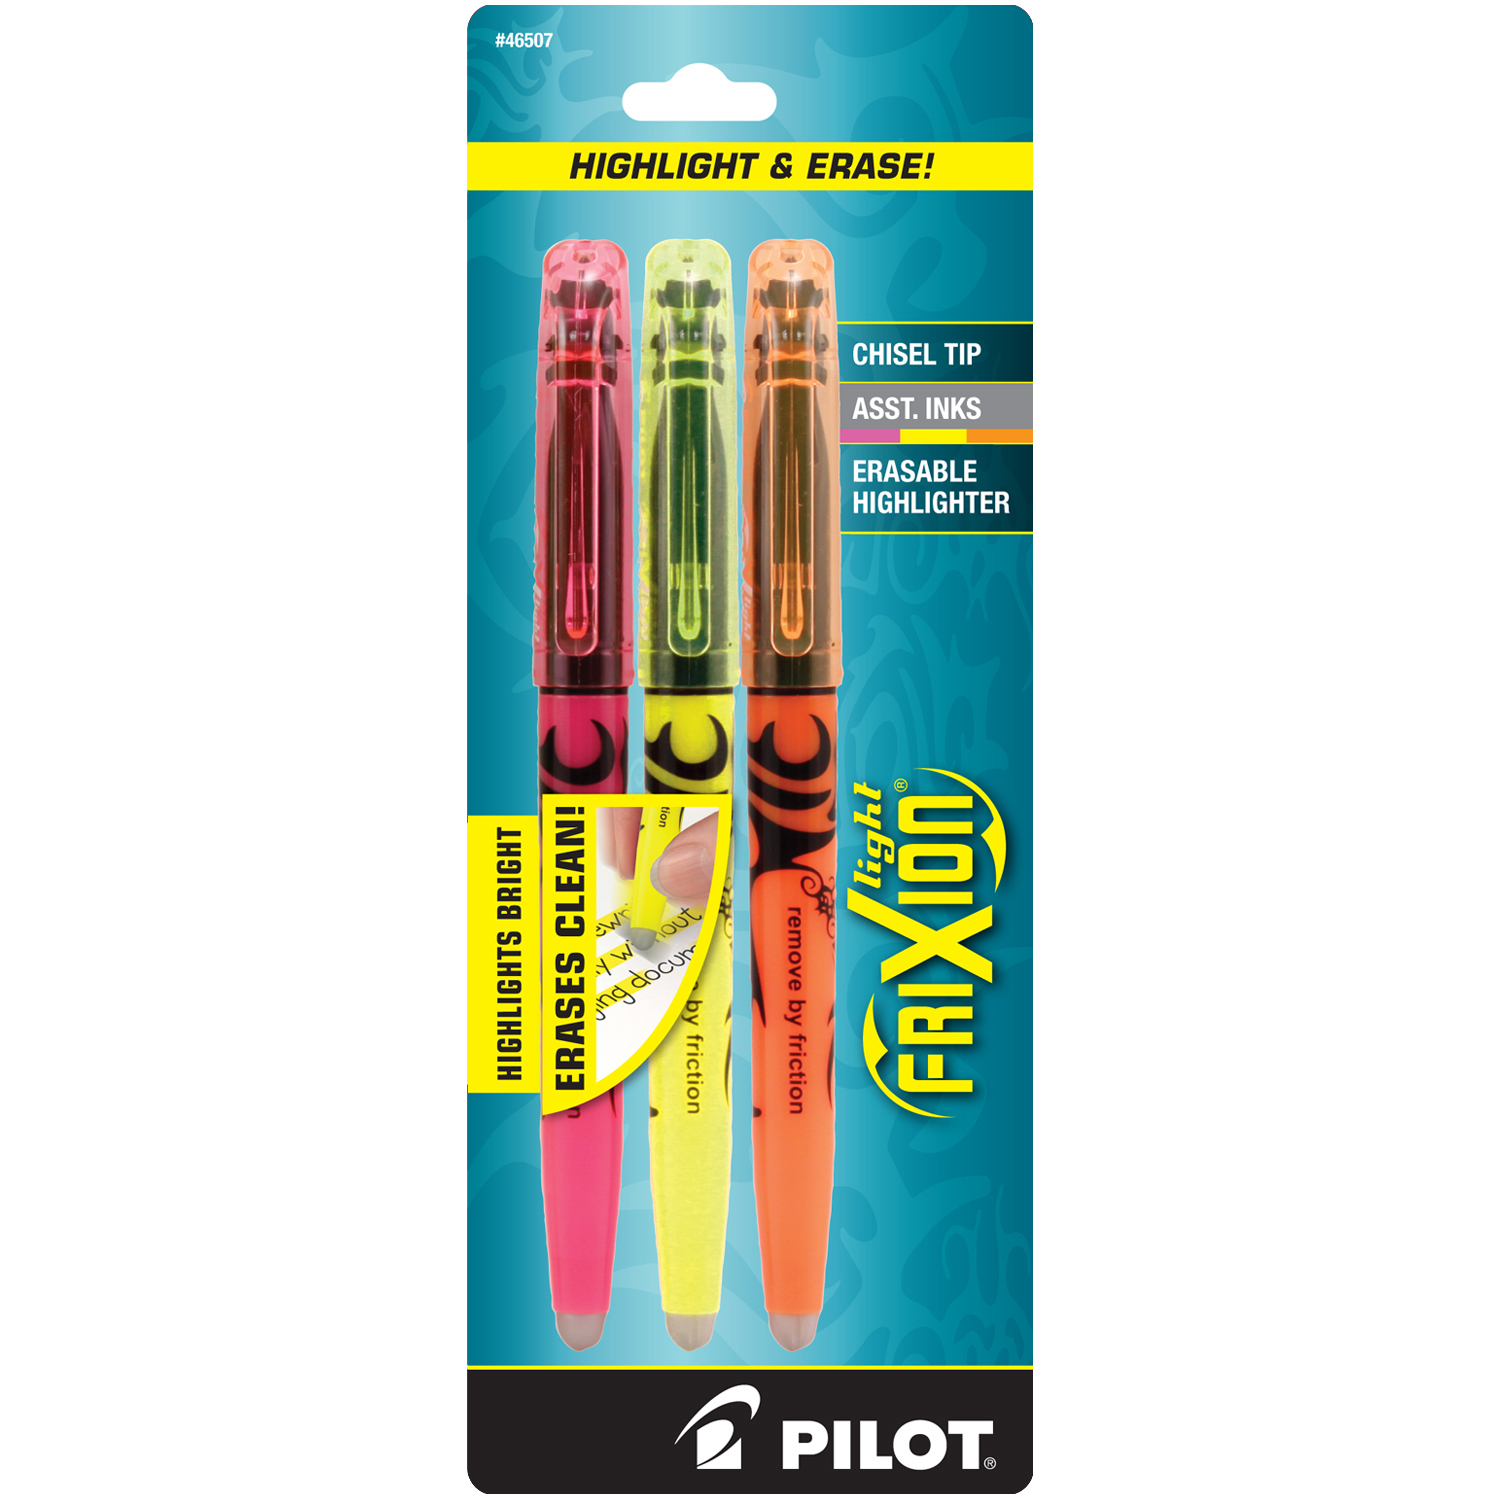 Pilot Frixion Erasable Highlighter 3/Pk Asstd